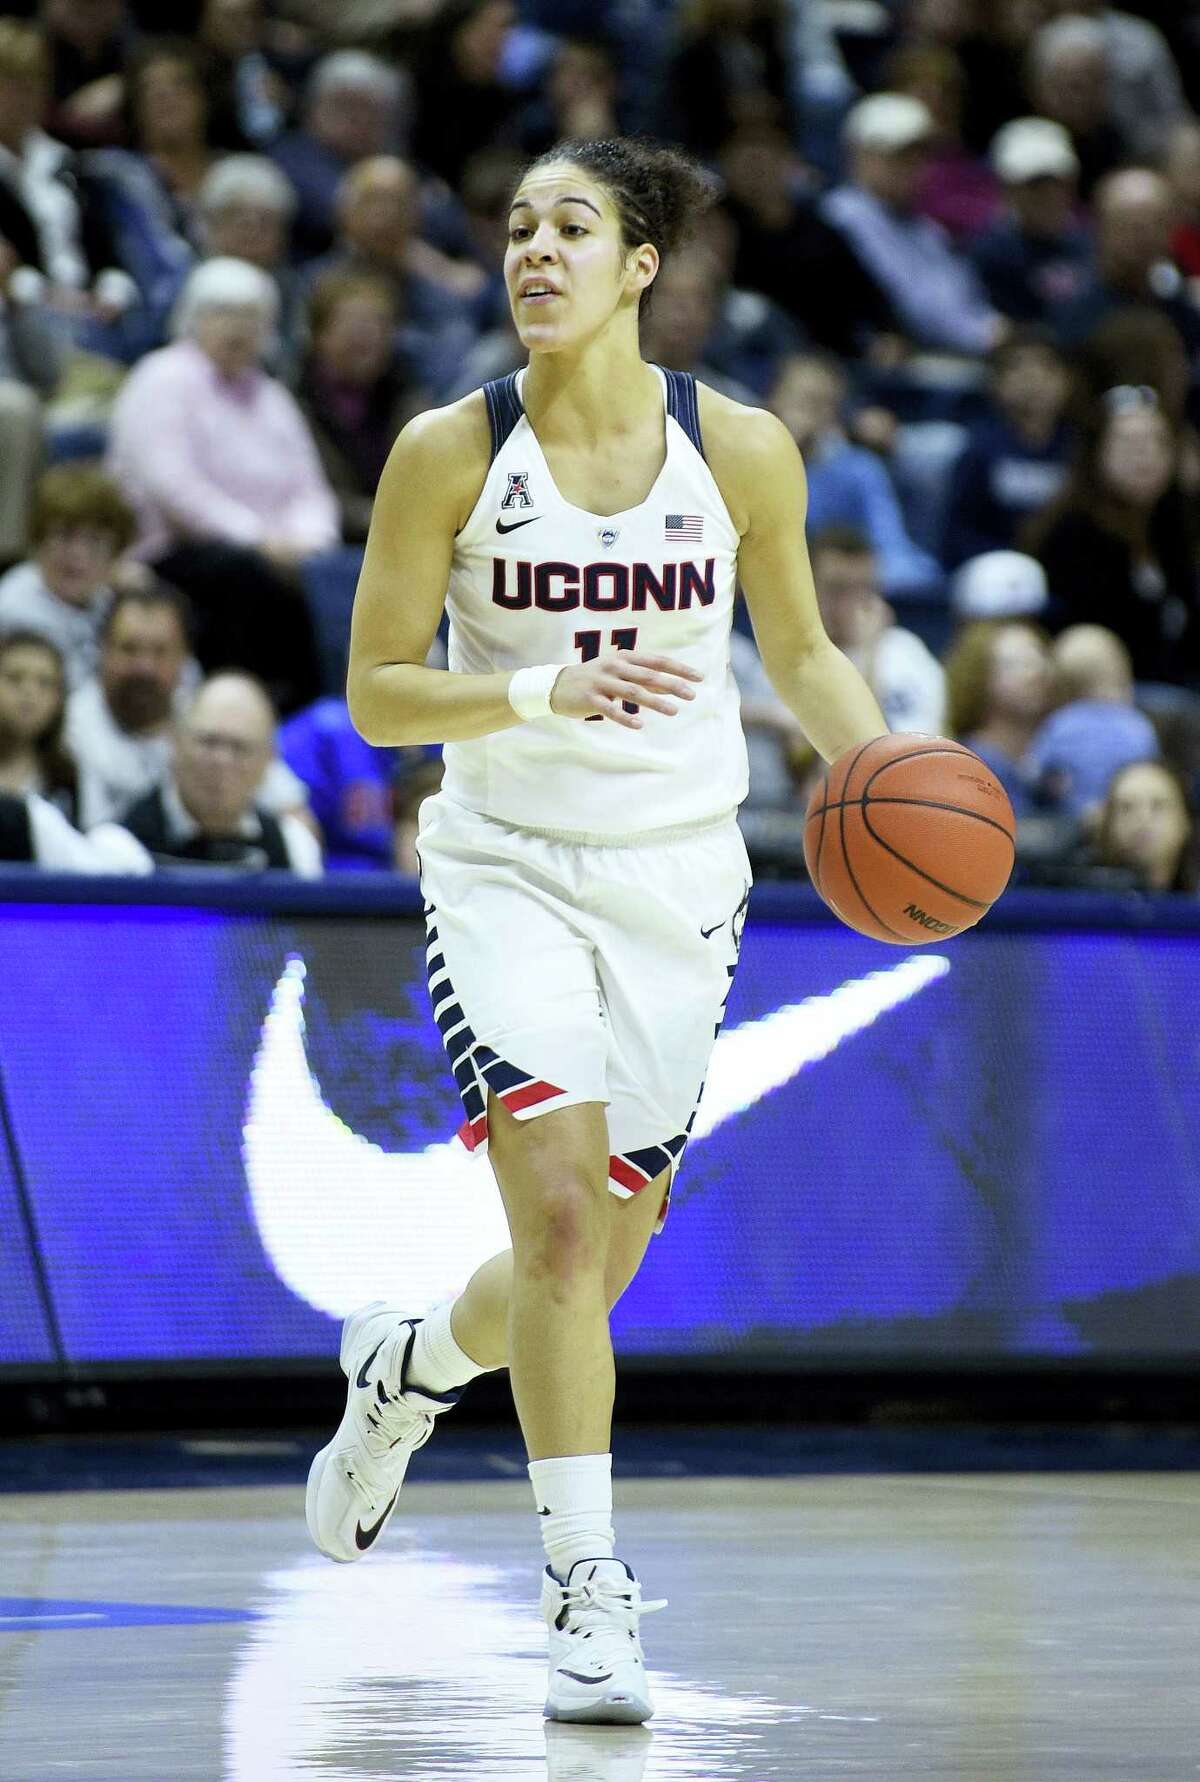 UConn's Kia Nurse dribbles during the second half Saturday's game in Storrs.